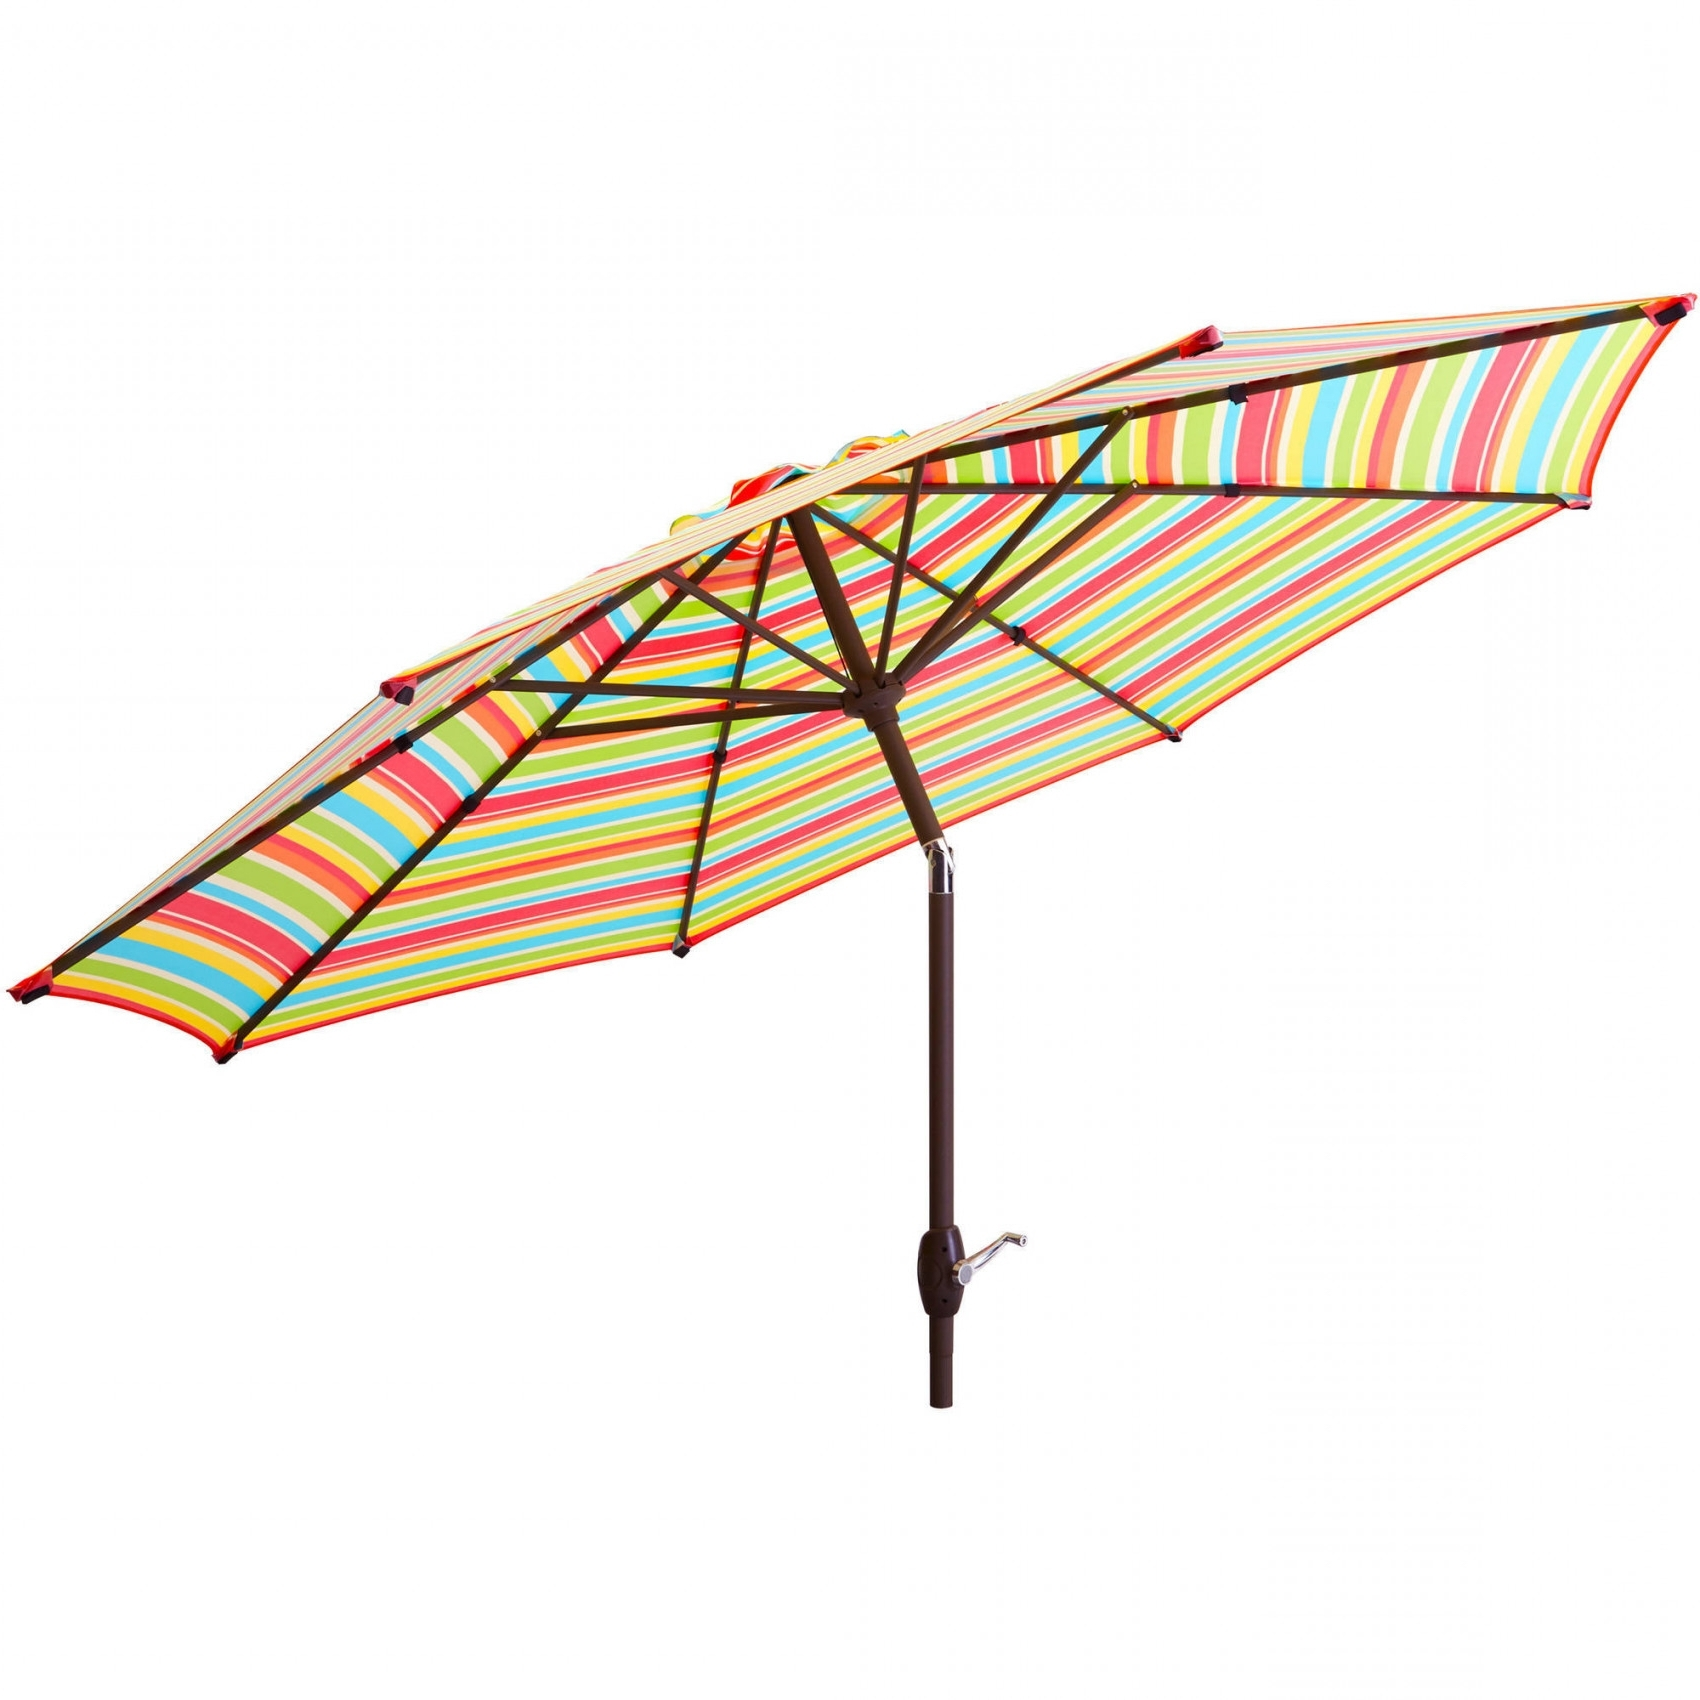 Patio Umbrellas Walmart – Home Design Ideas With Current Walmart Umbrellas Patio (Gallery 8 of 20)